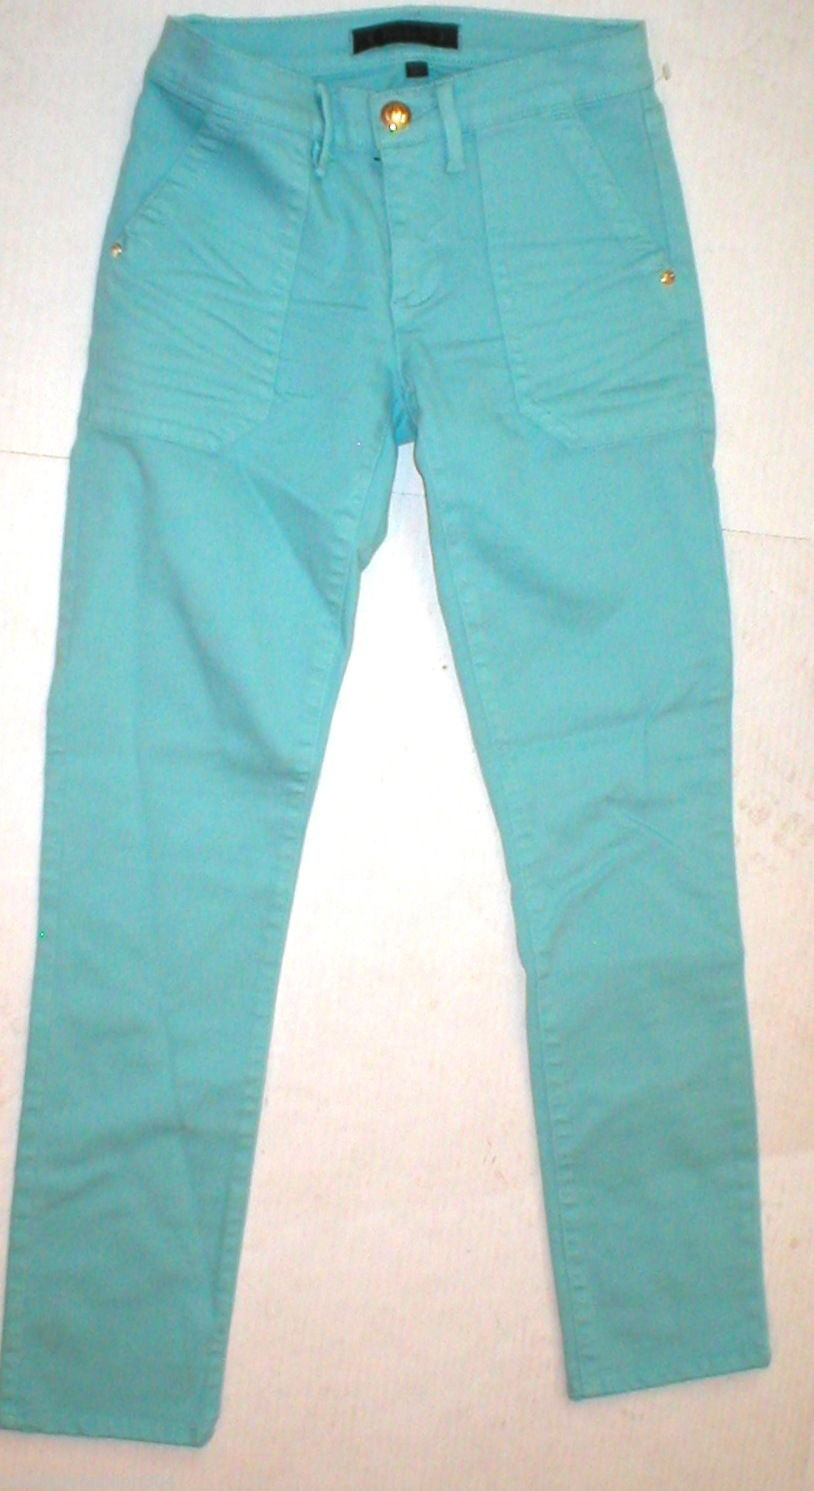 New Logo Crop Jeans Juicy Couture 25 Womens Snap Pockets Aqua Blue Teal Skinny image 6